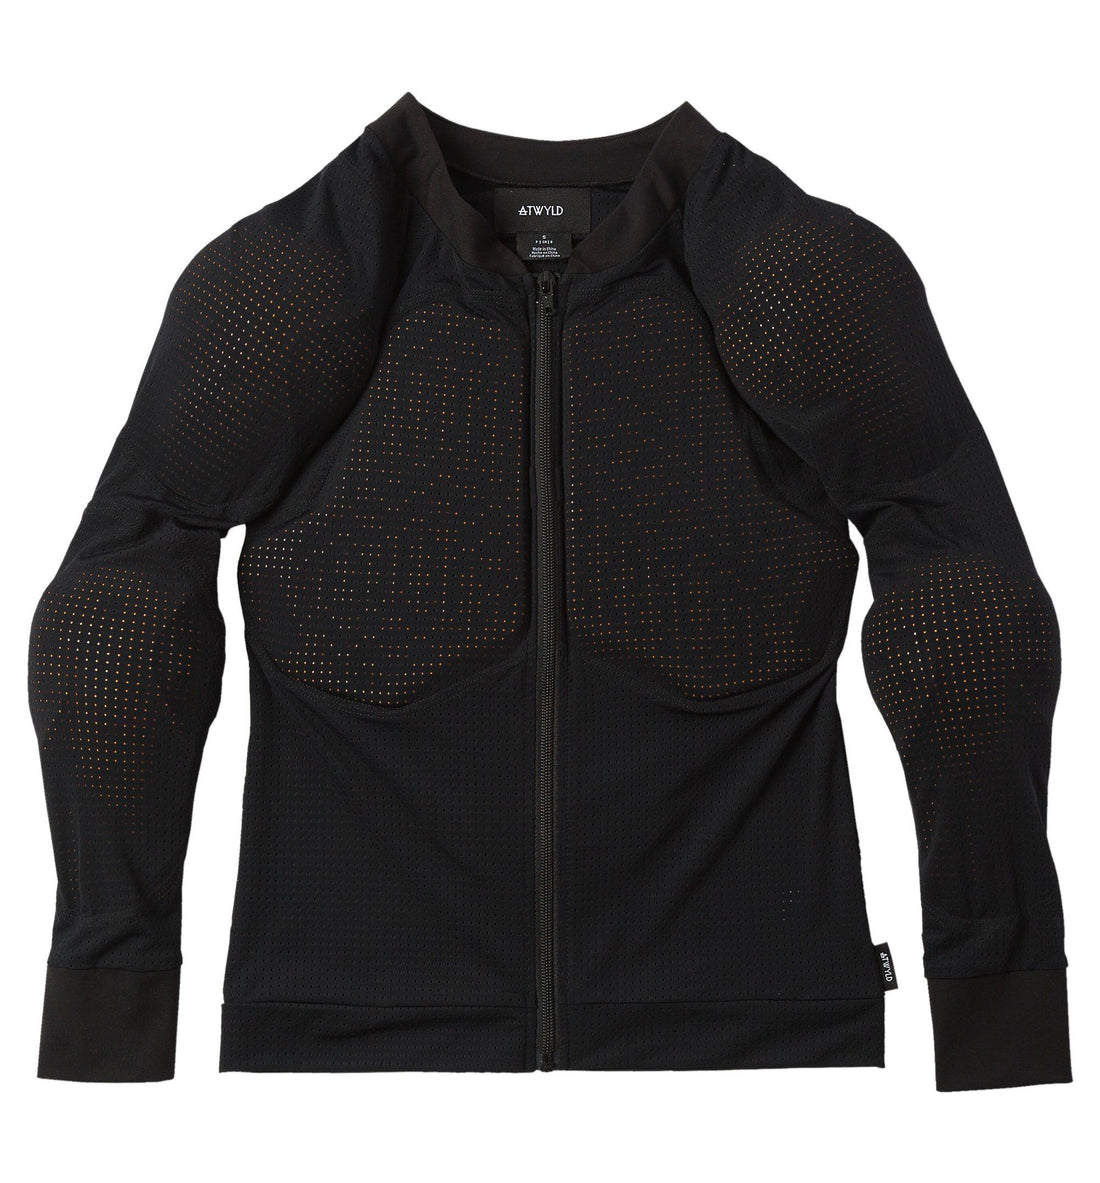 Atwyld Women's Barricade Armored Shirt - Outerwear - Iron and Resin